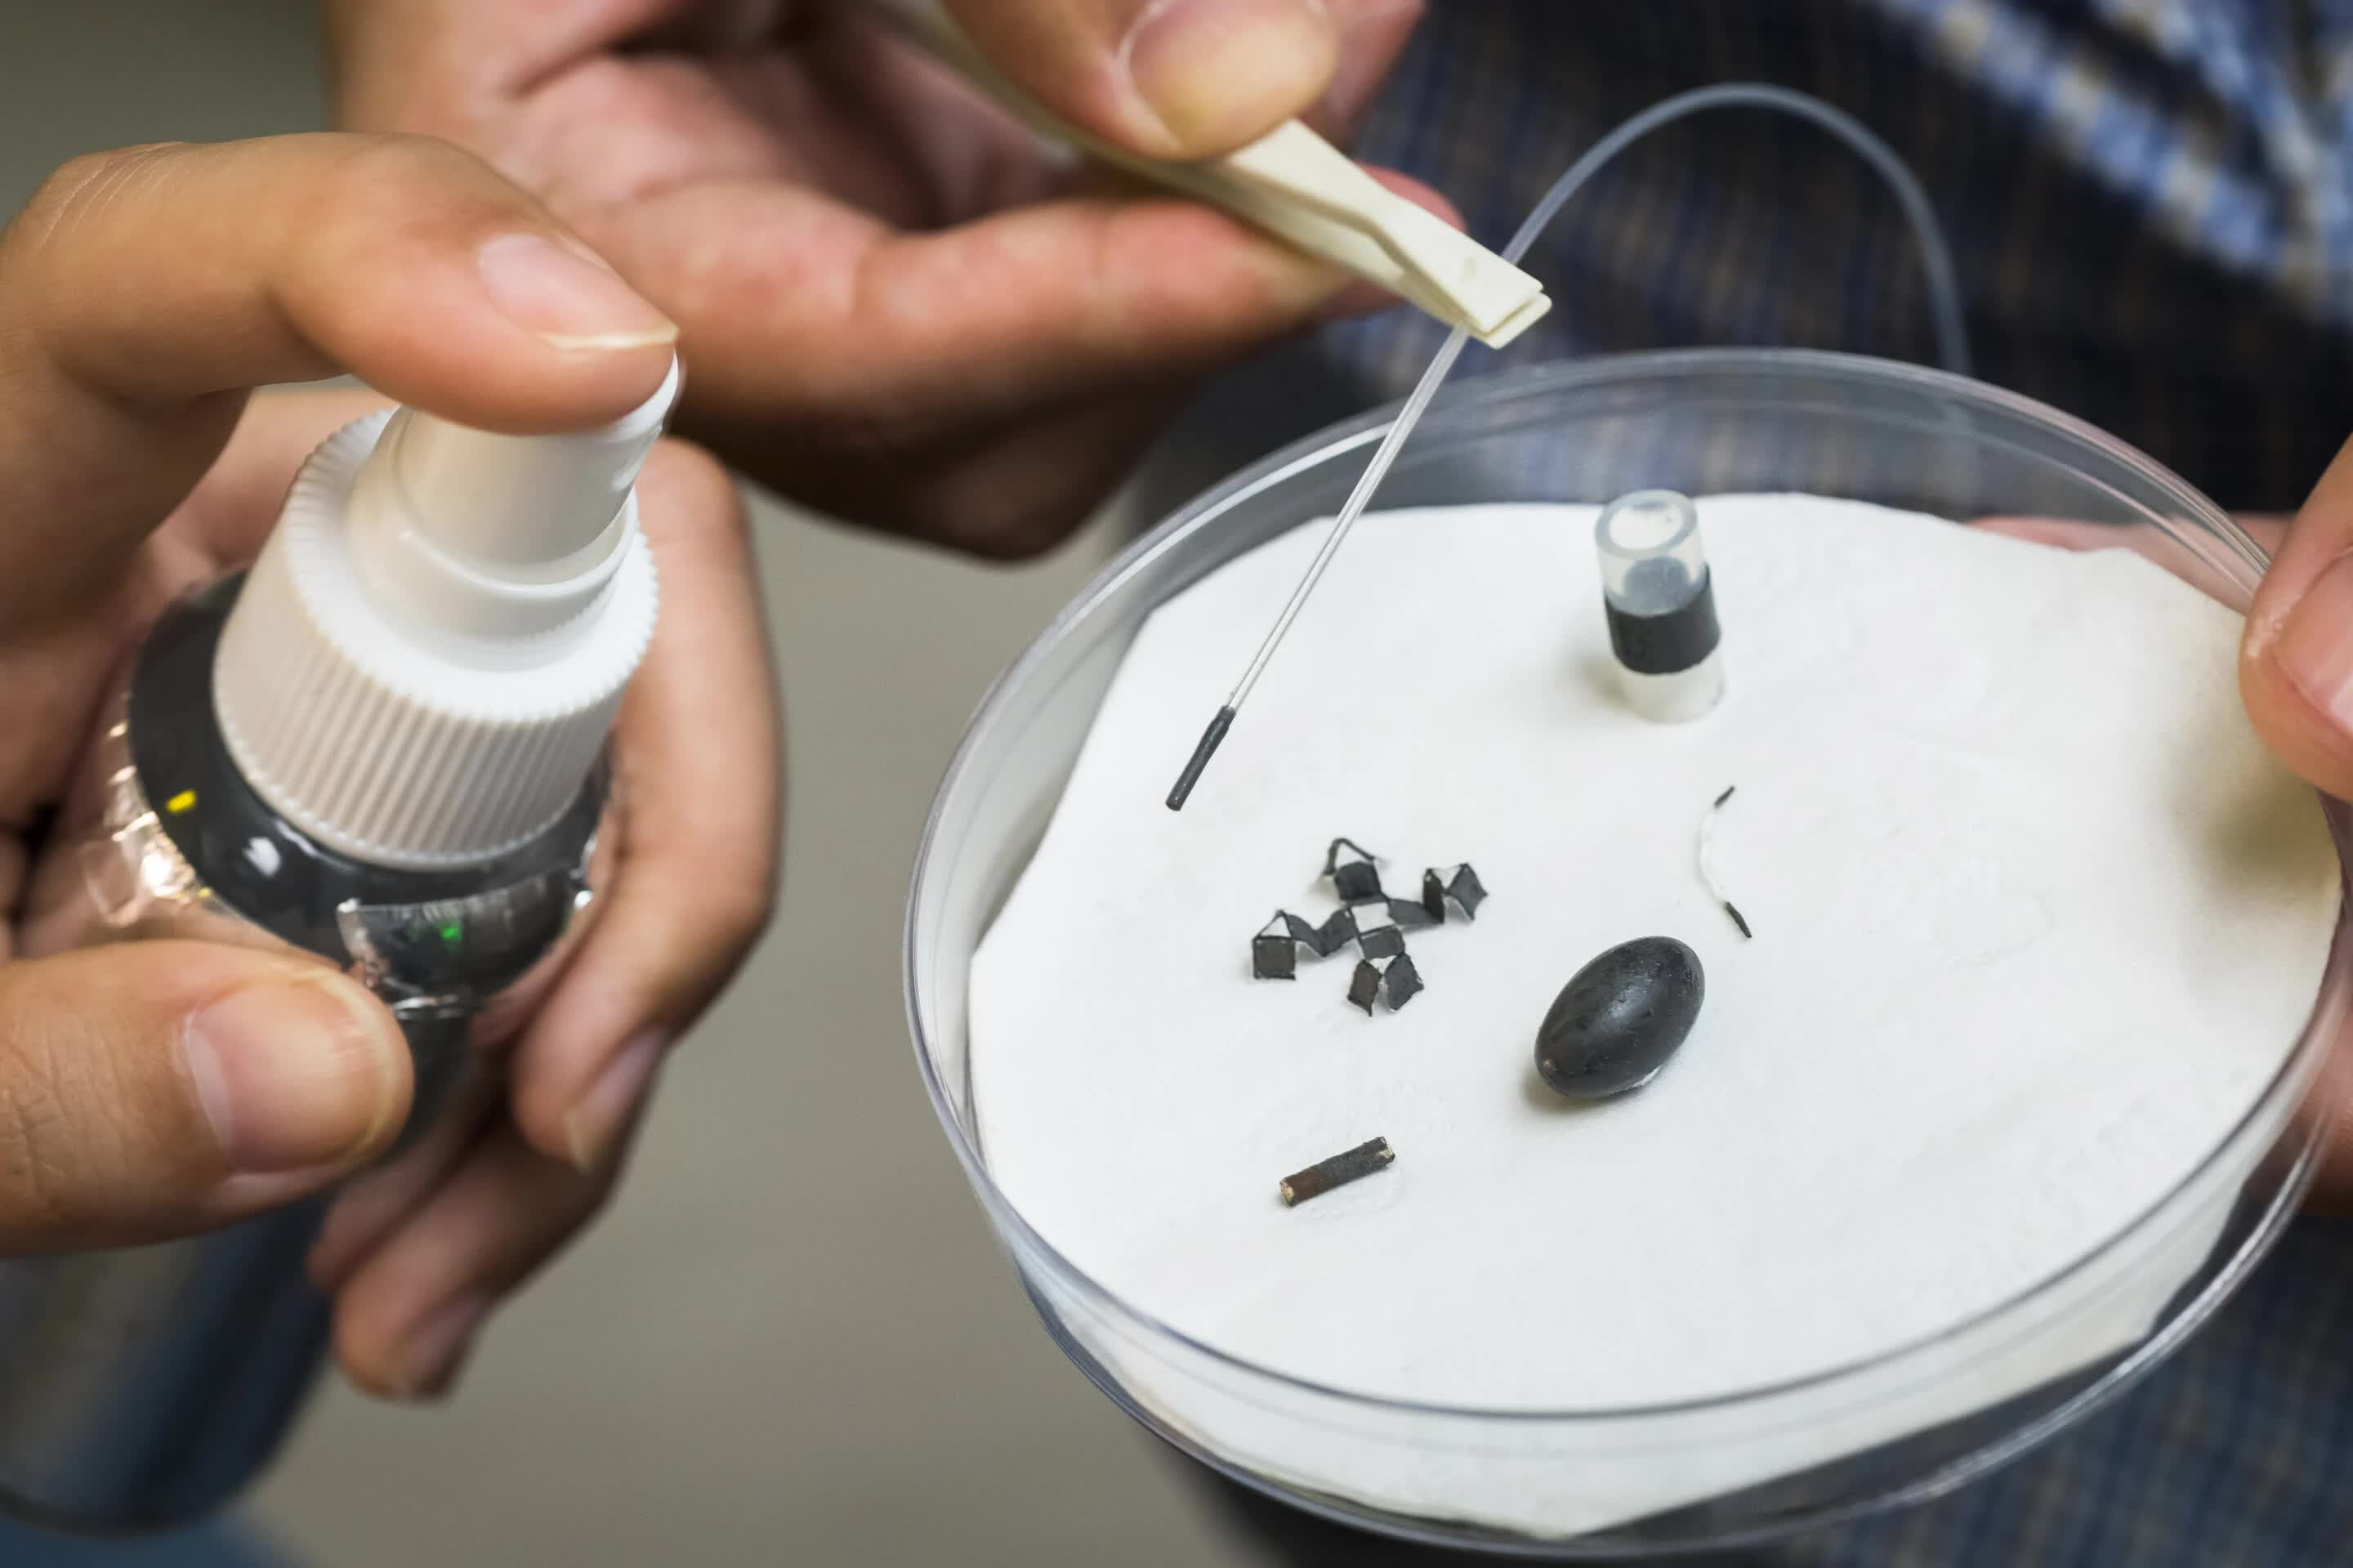 Magnetic spray coating used to create tiny, movable robots